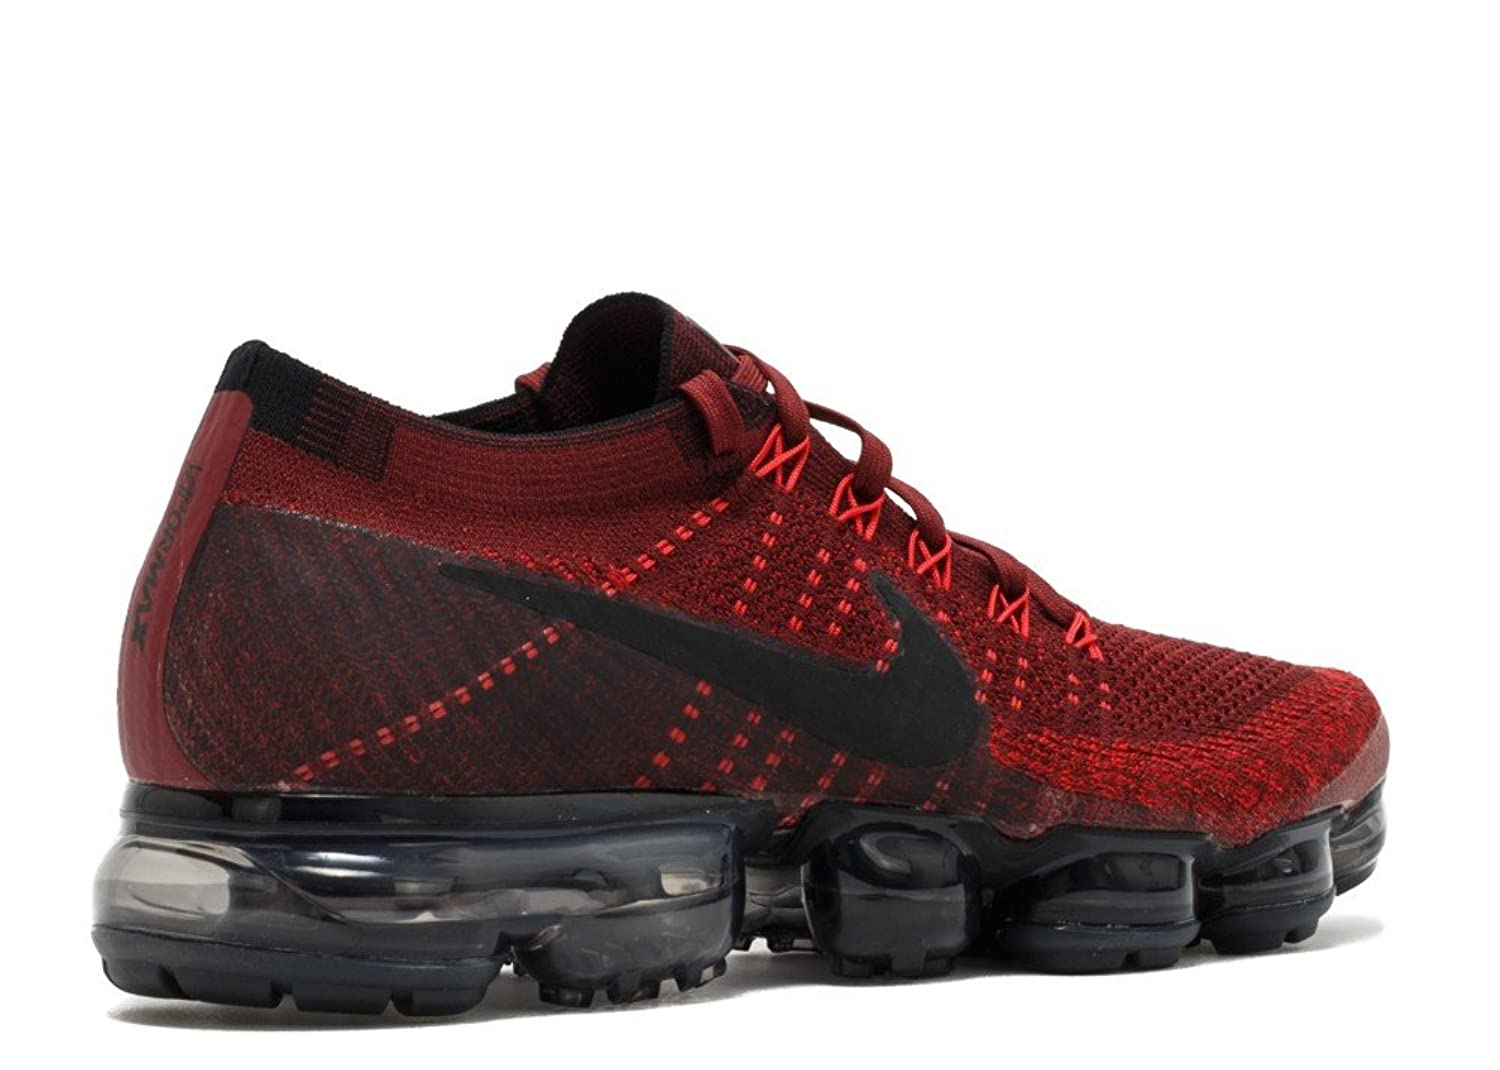 the latest d4729 8d659 NIKE AIR VAPORMAX - 849558-601 - SIZE 11.5  Amazon.ca  Shoes   Handbags